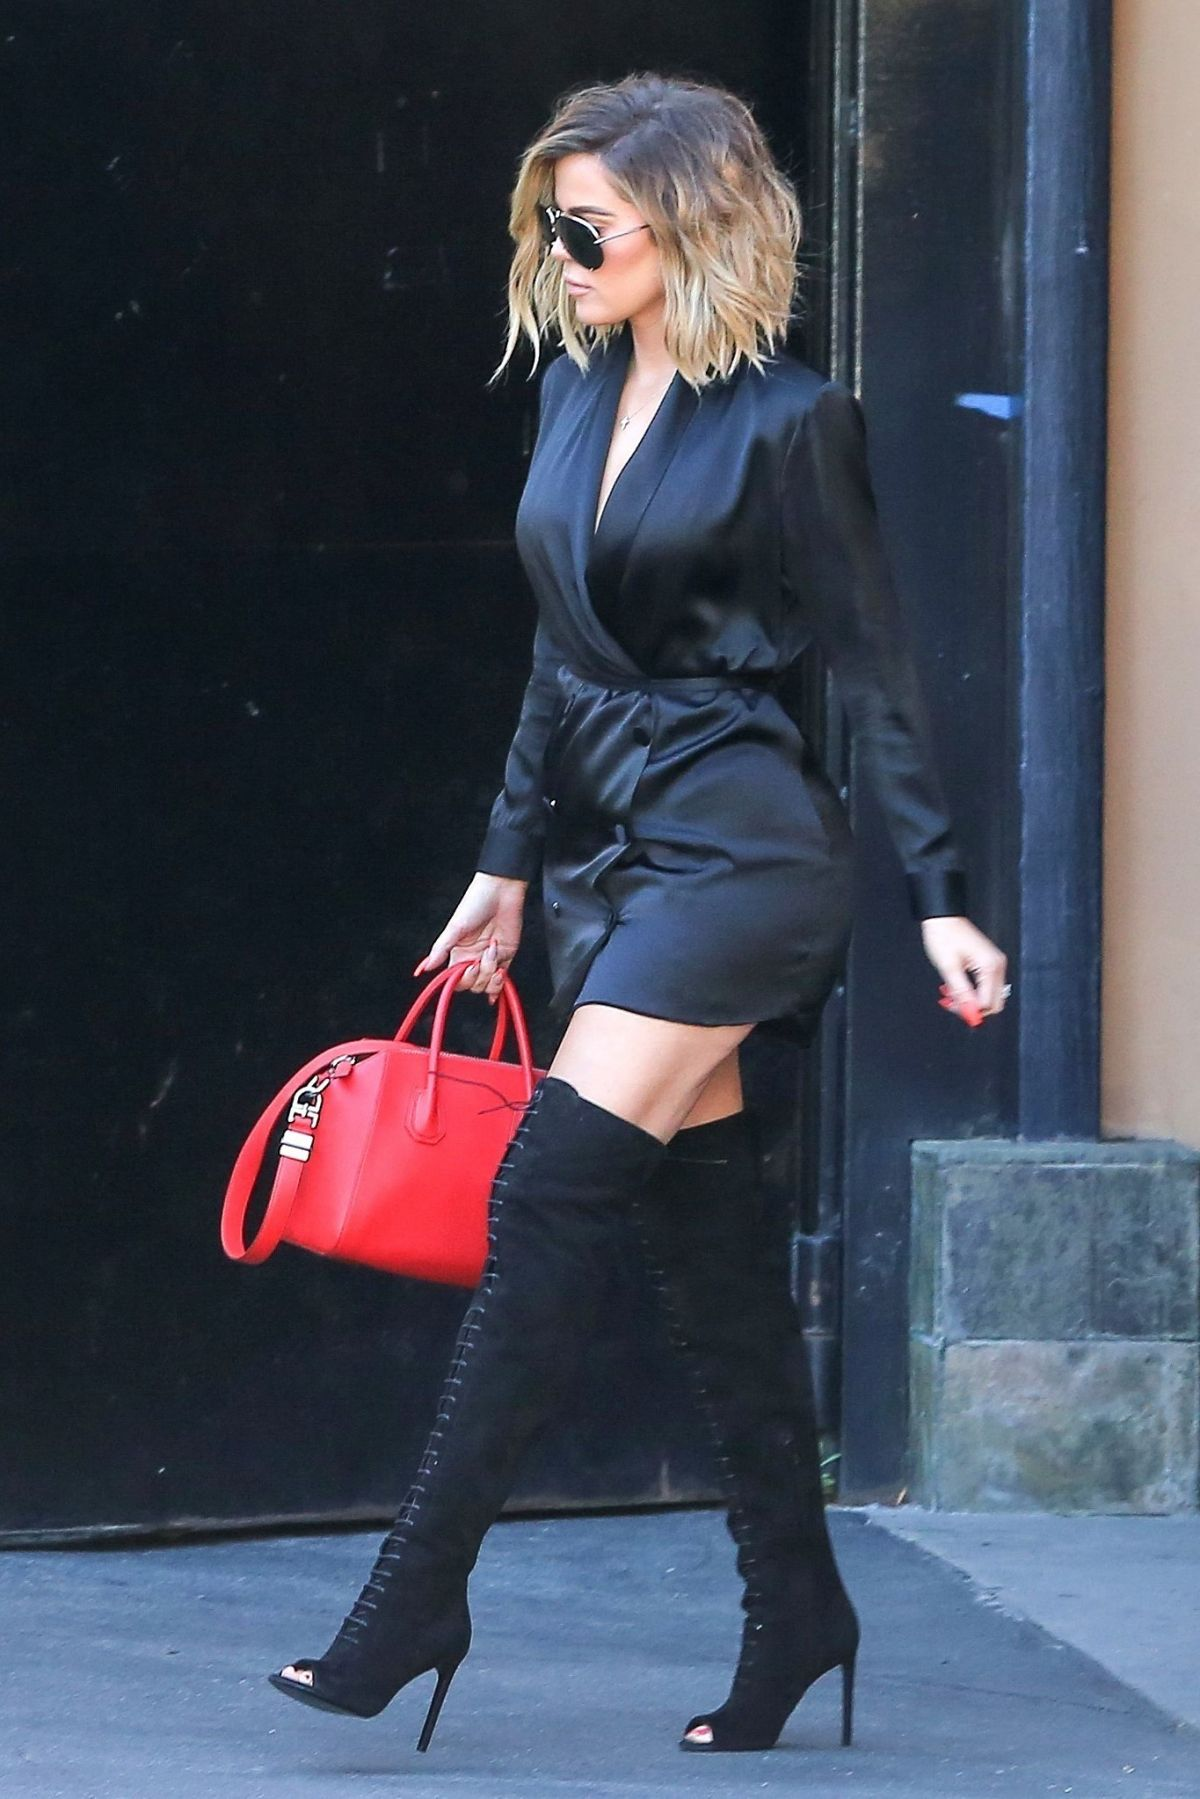 Khloe Kardashian Leaves A Studio In Los Angeles 04 20 2017